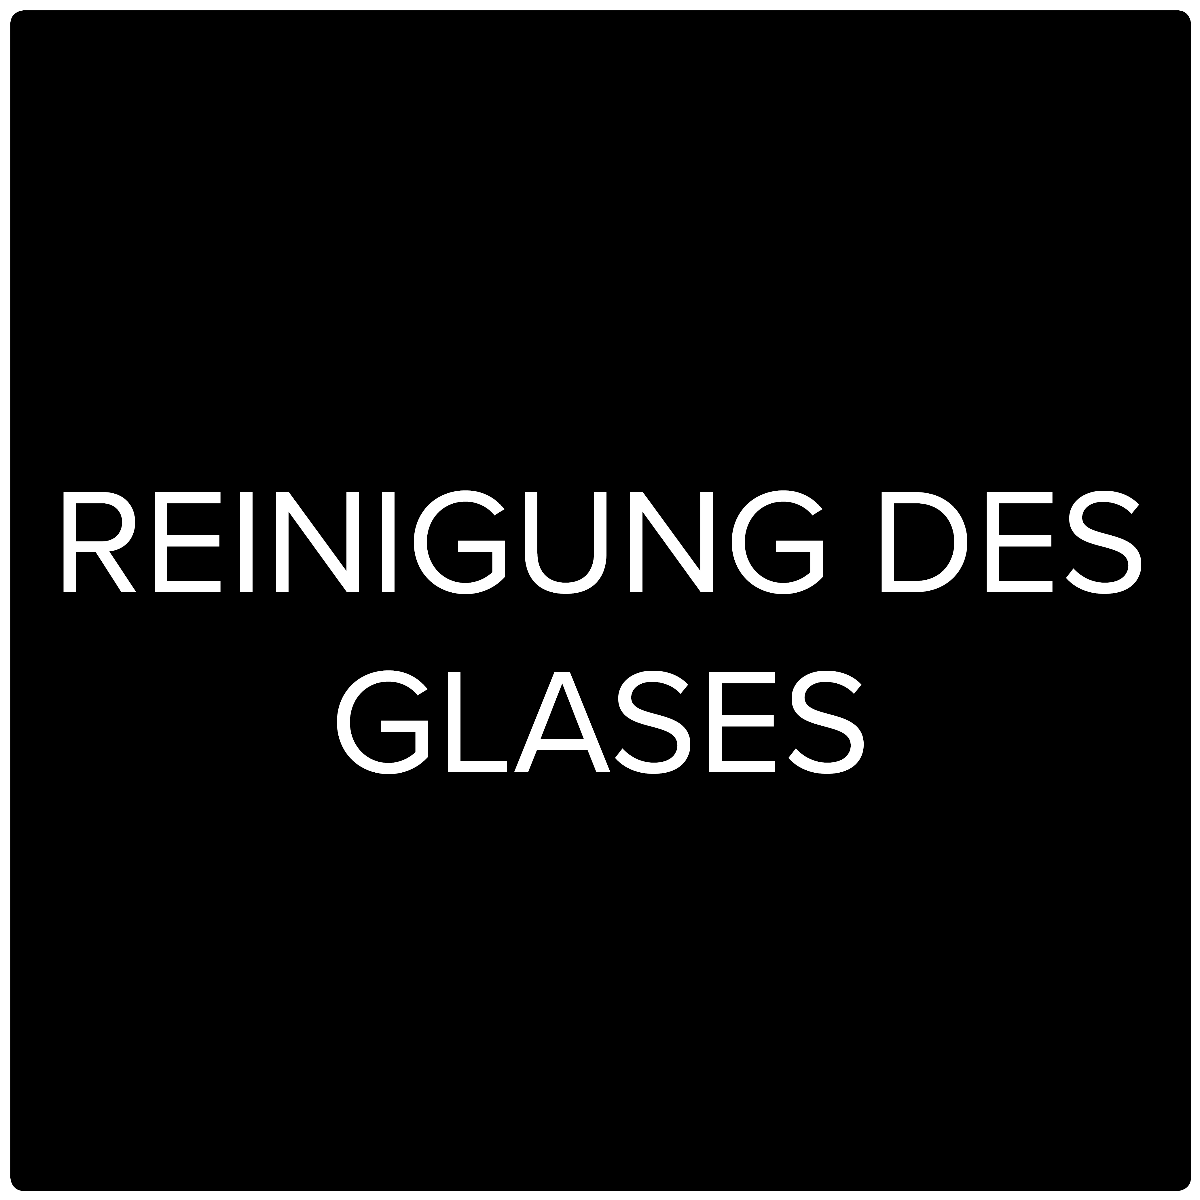 HWAM Video: Reinigung des Glases